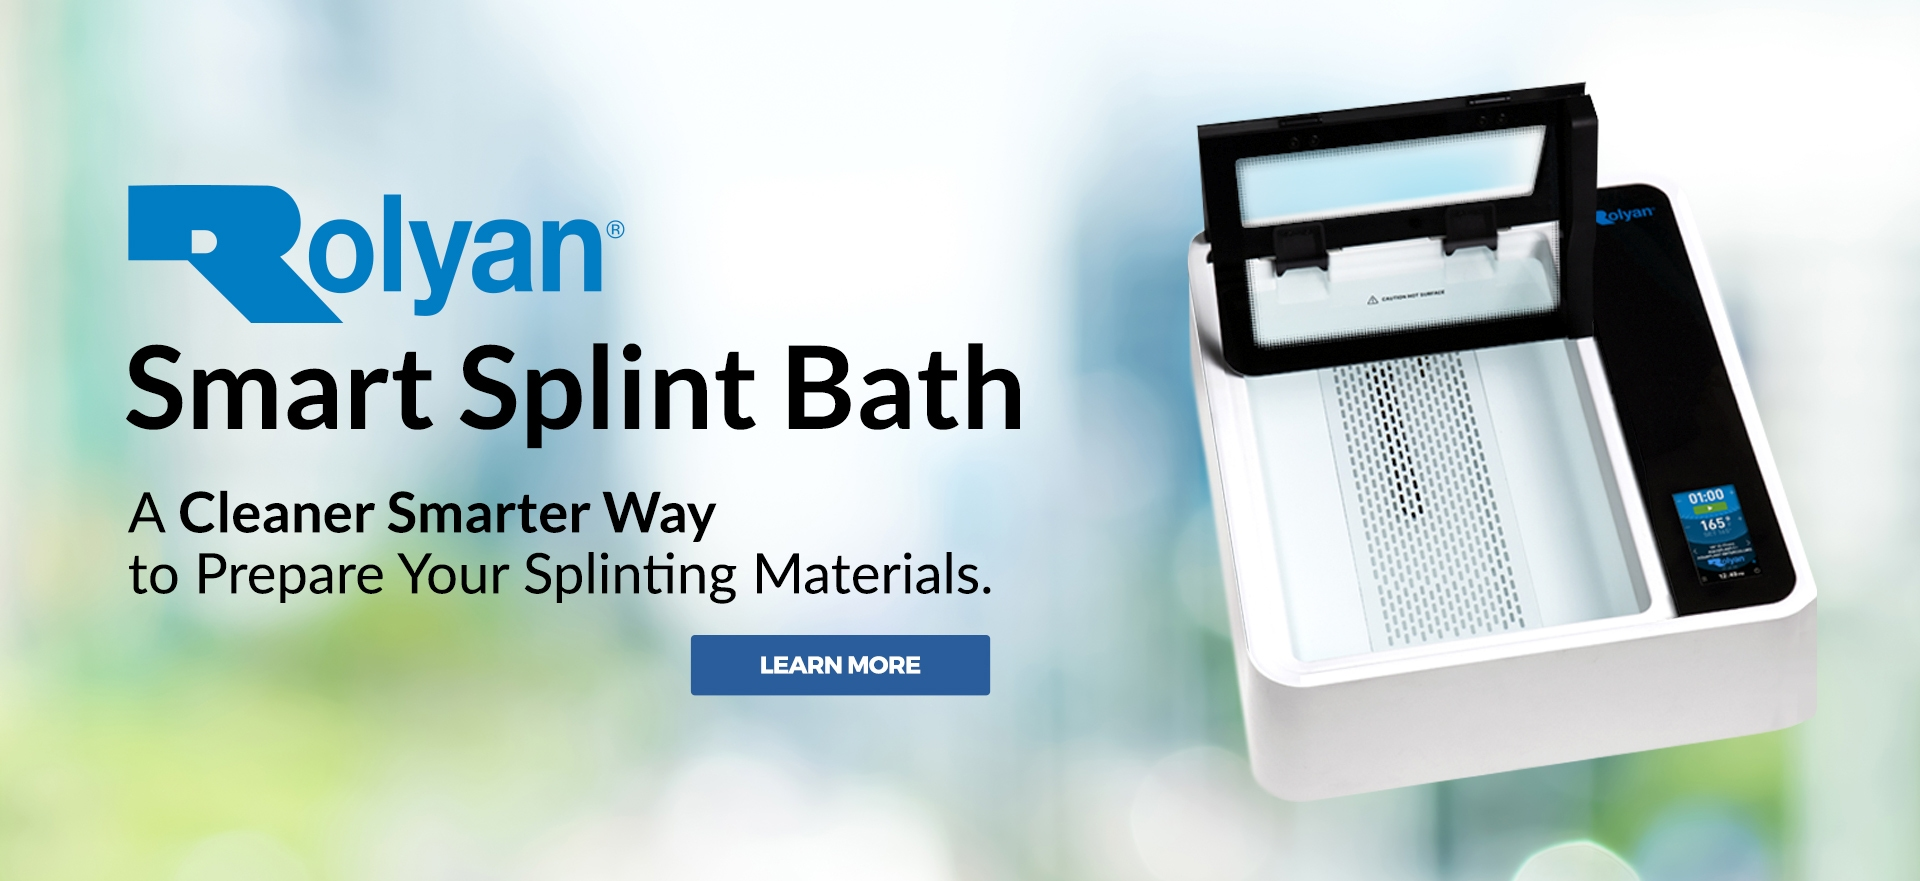 Rolyan Splint Bath